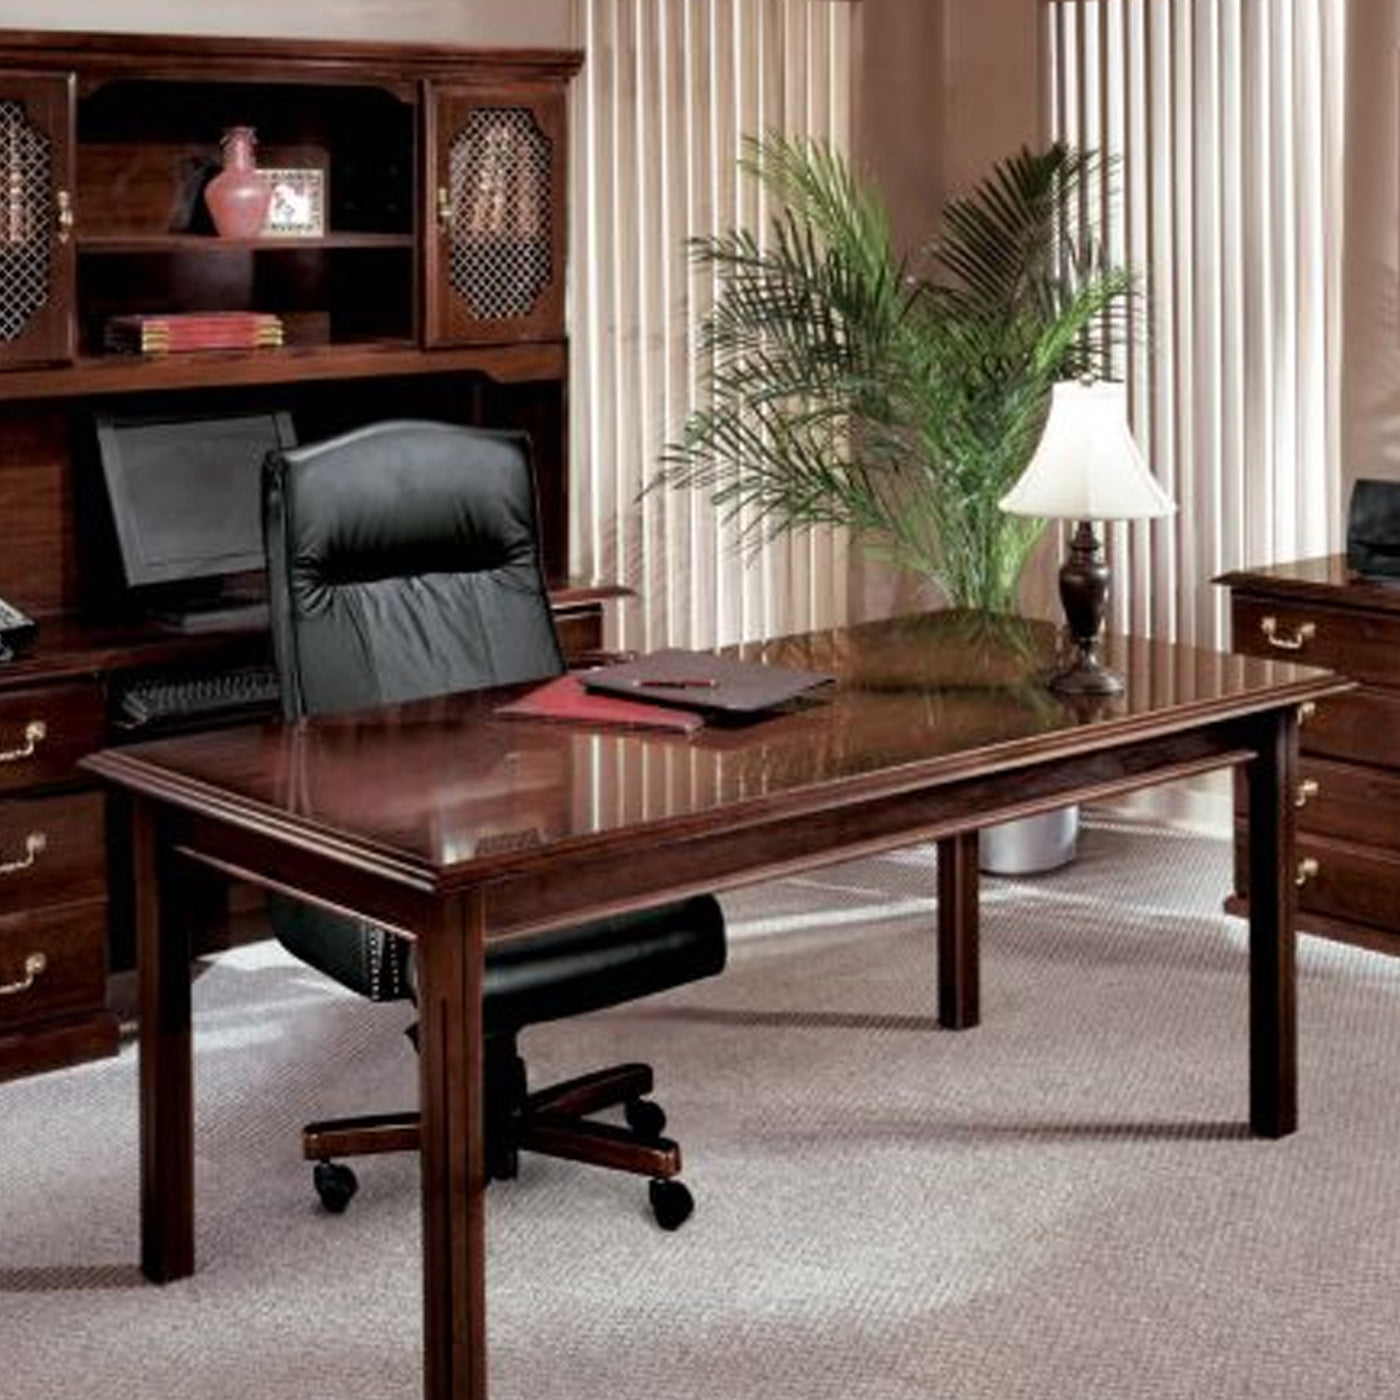 DMI Office Furniture Works Governors Series | upscale office furniture, dark wood office furniture set, home office suite furniture set